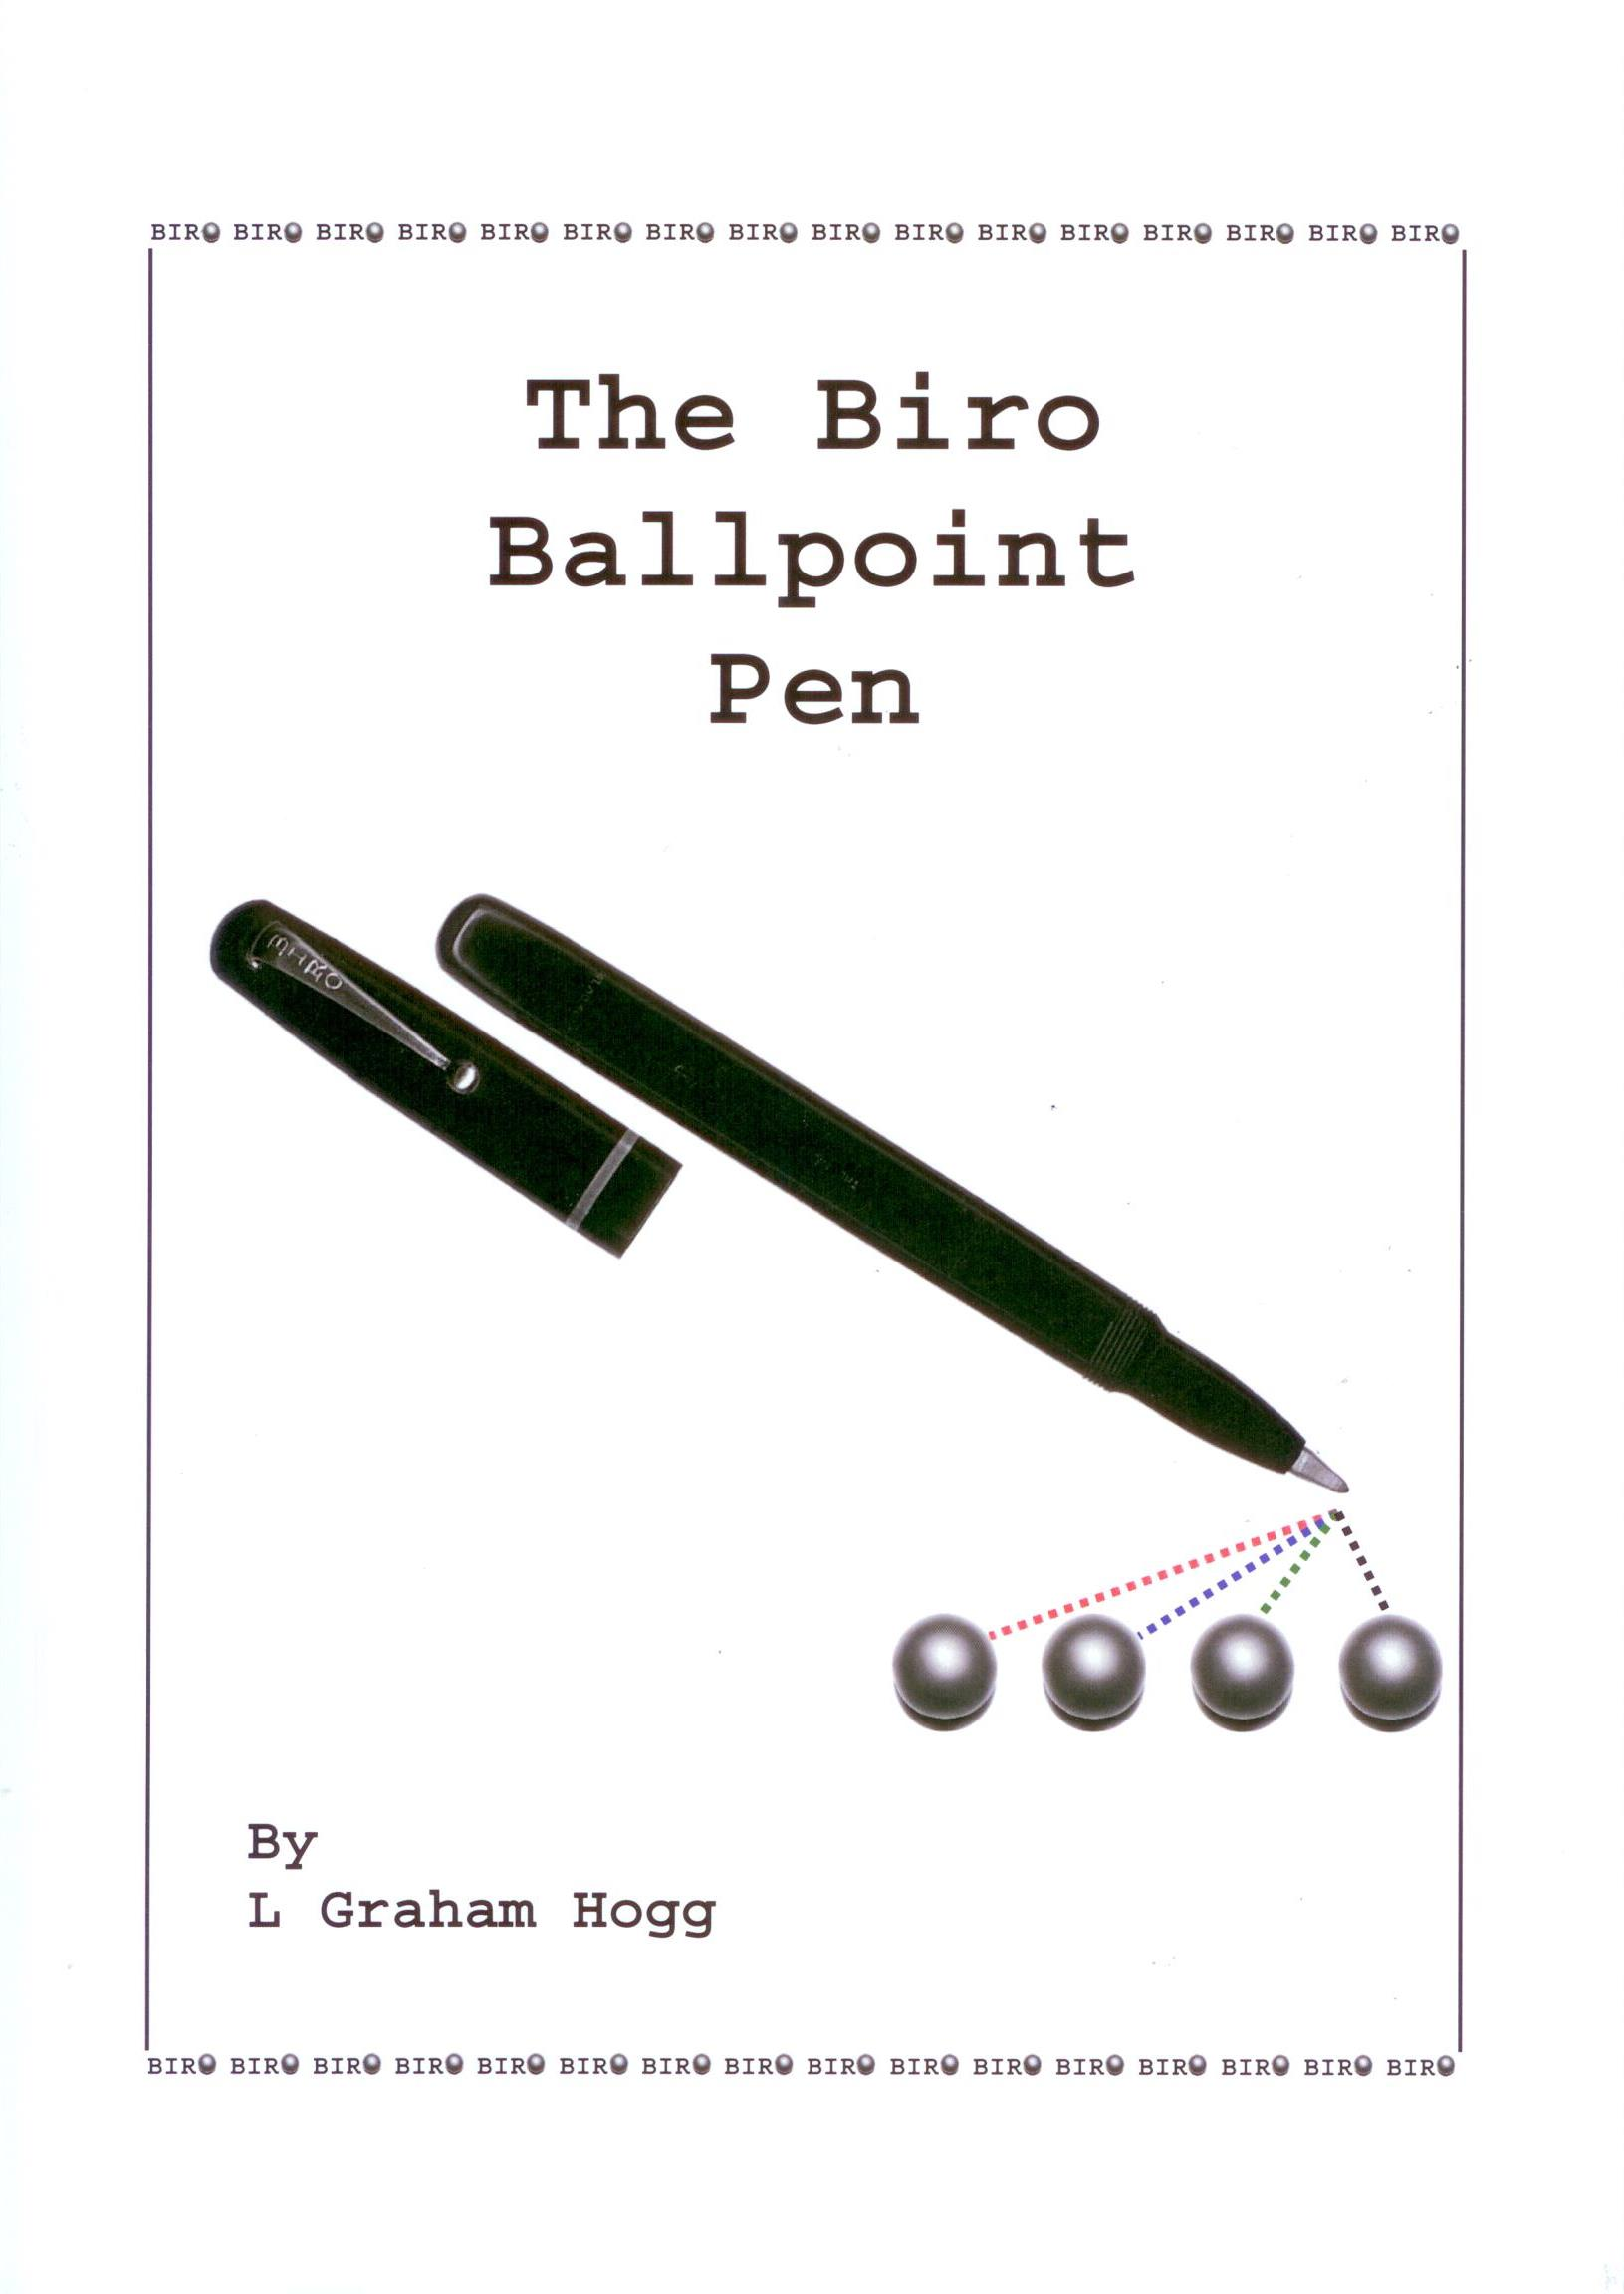 The Biro Ballpoint Pen